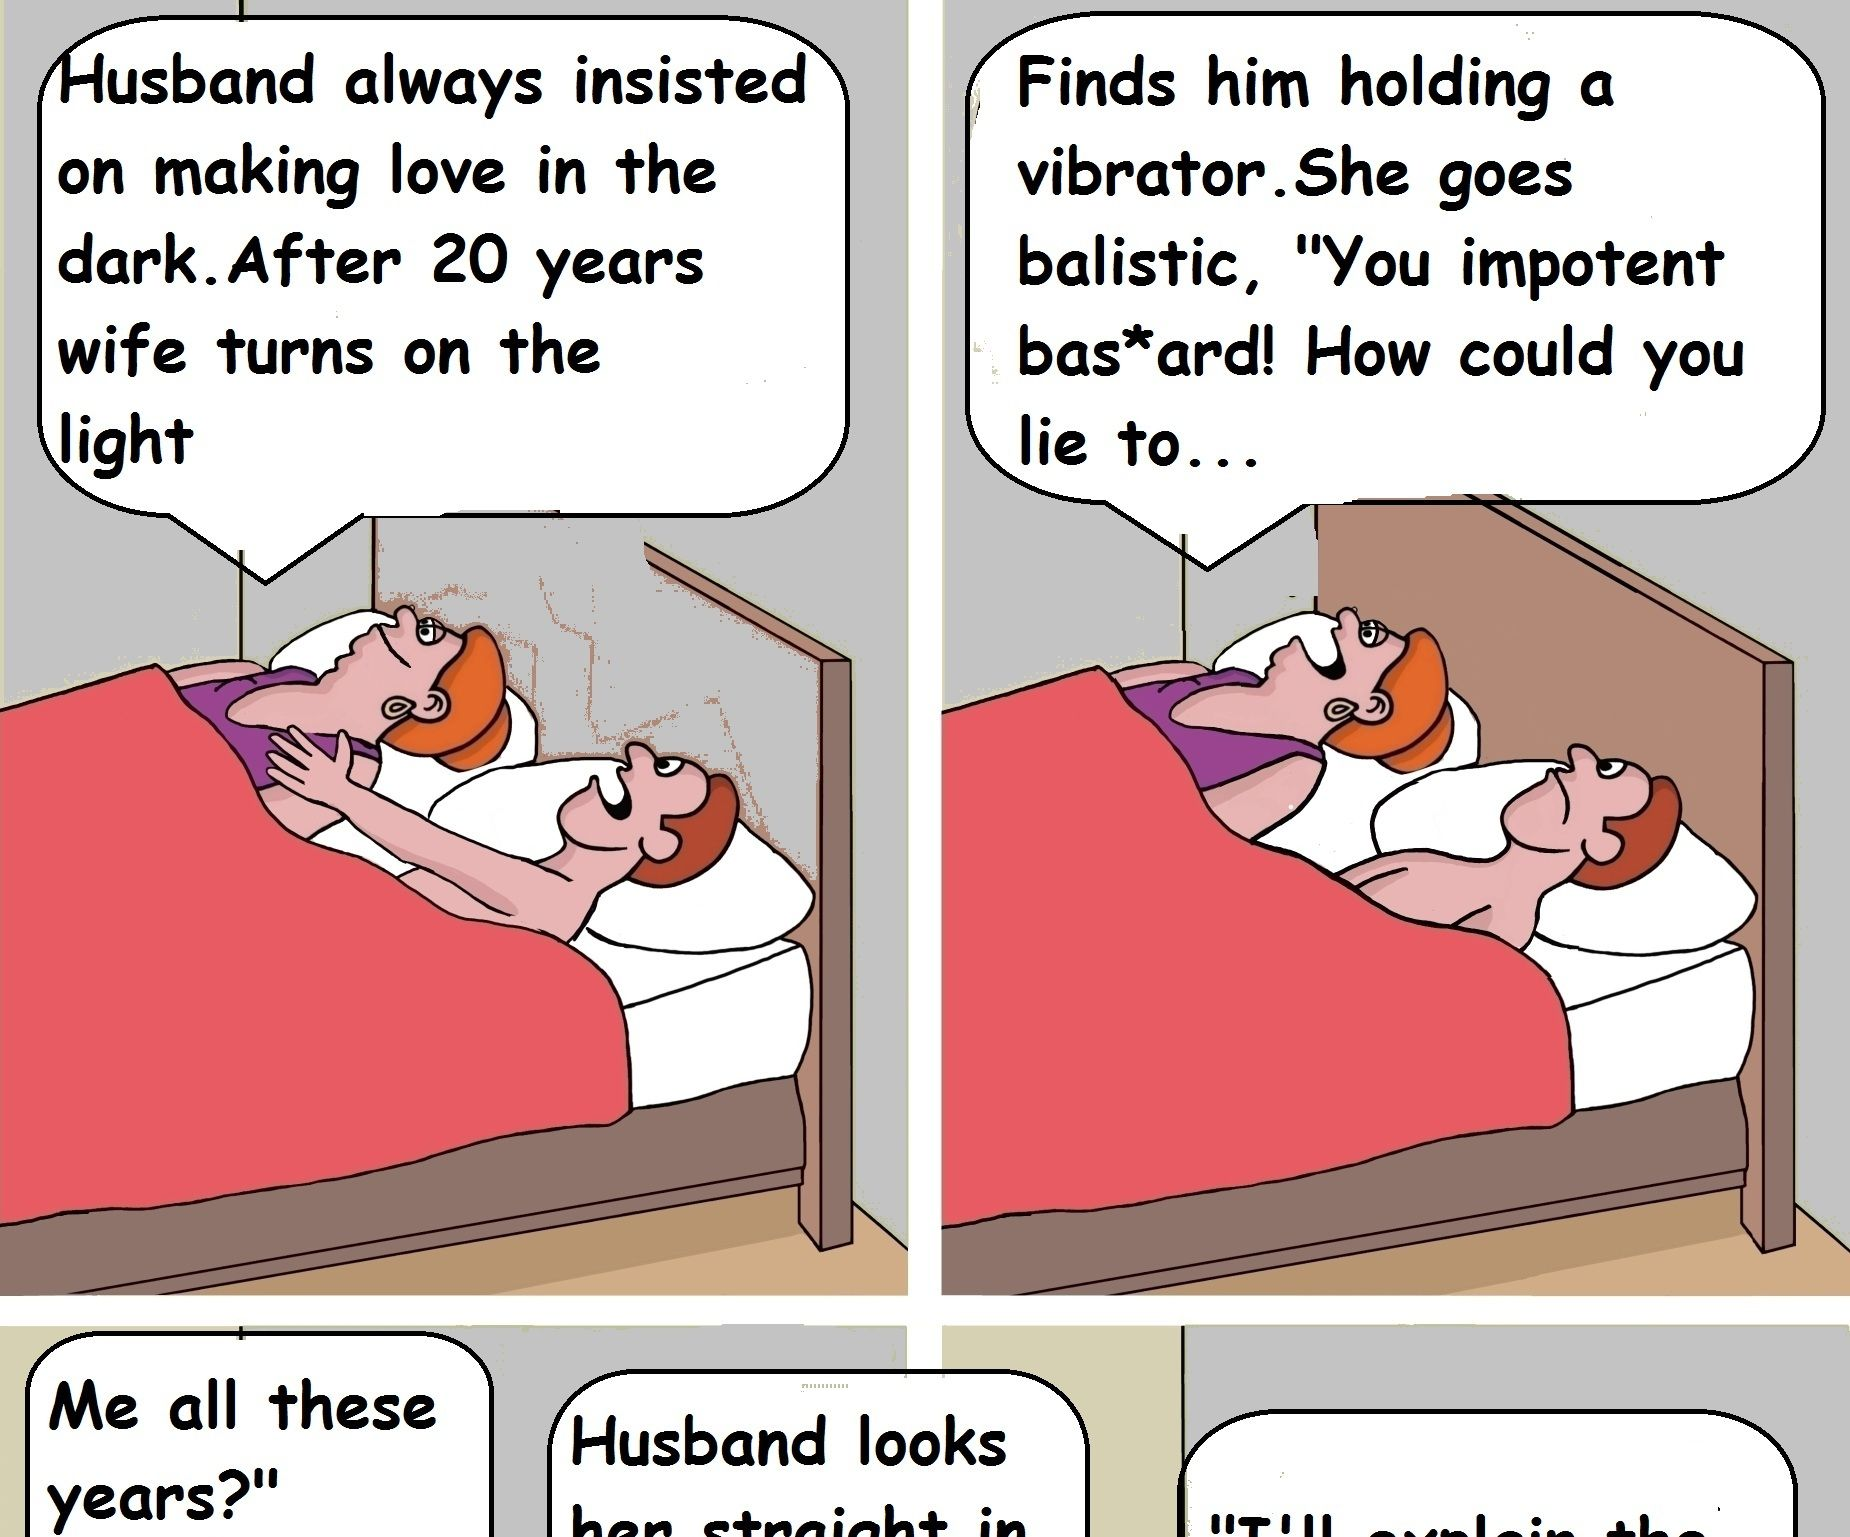 Husband Lies To Wife Life Improvement With Laughter Funny Marriage Jokes Funny Cartoon Quotes Funny Relationship Jokes